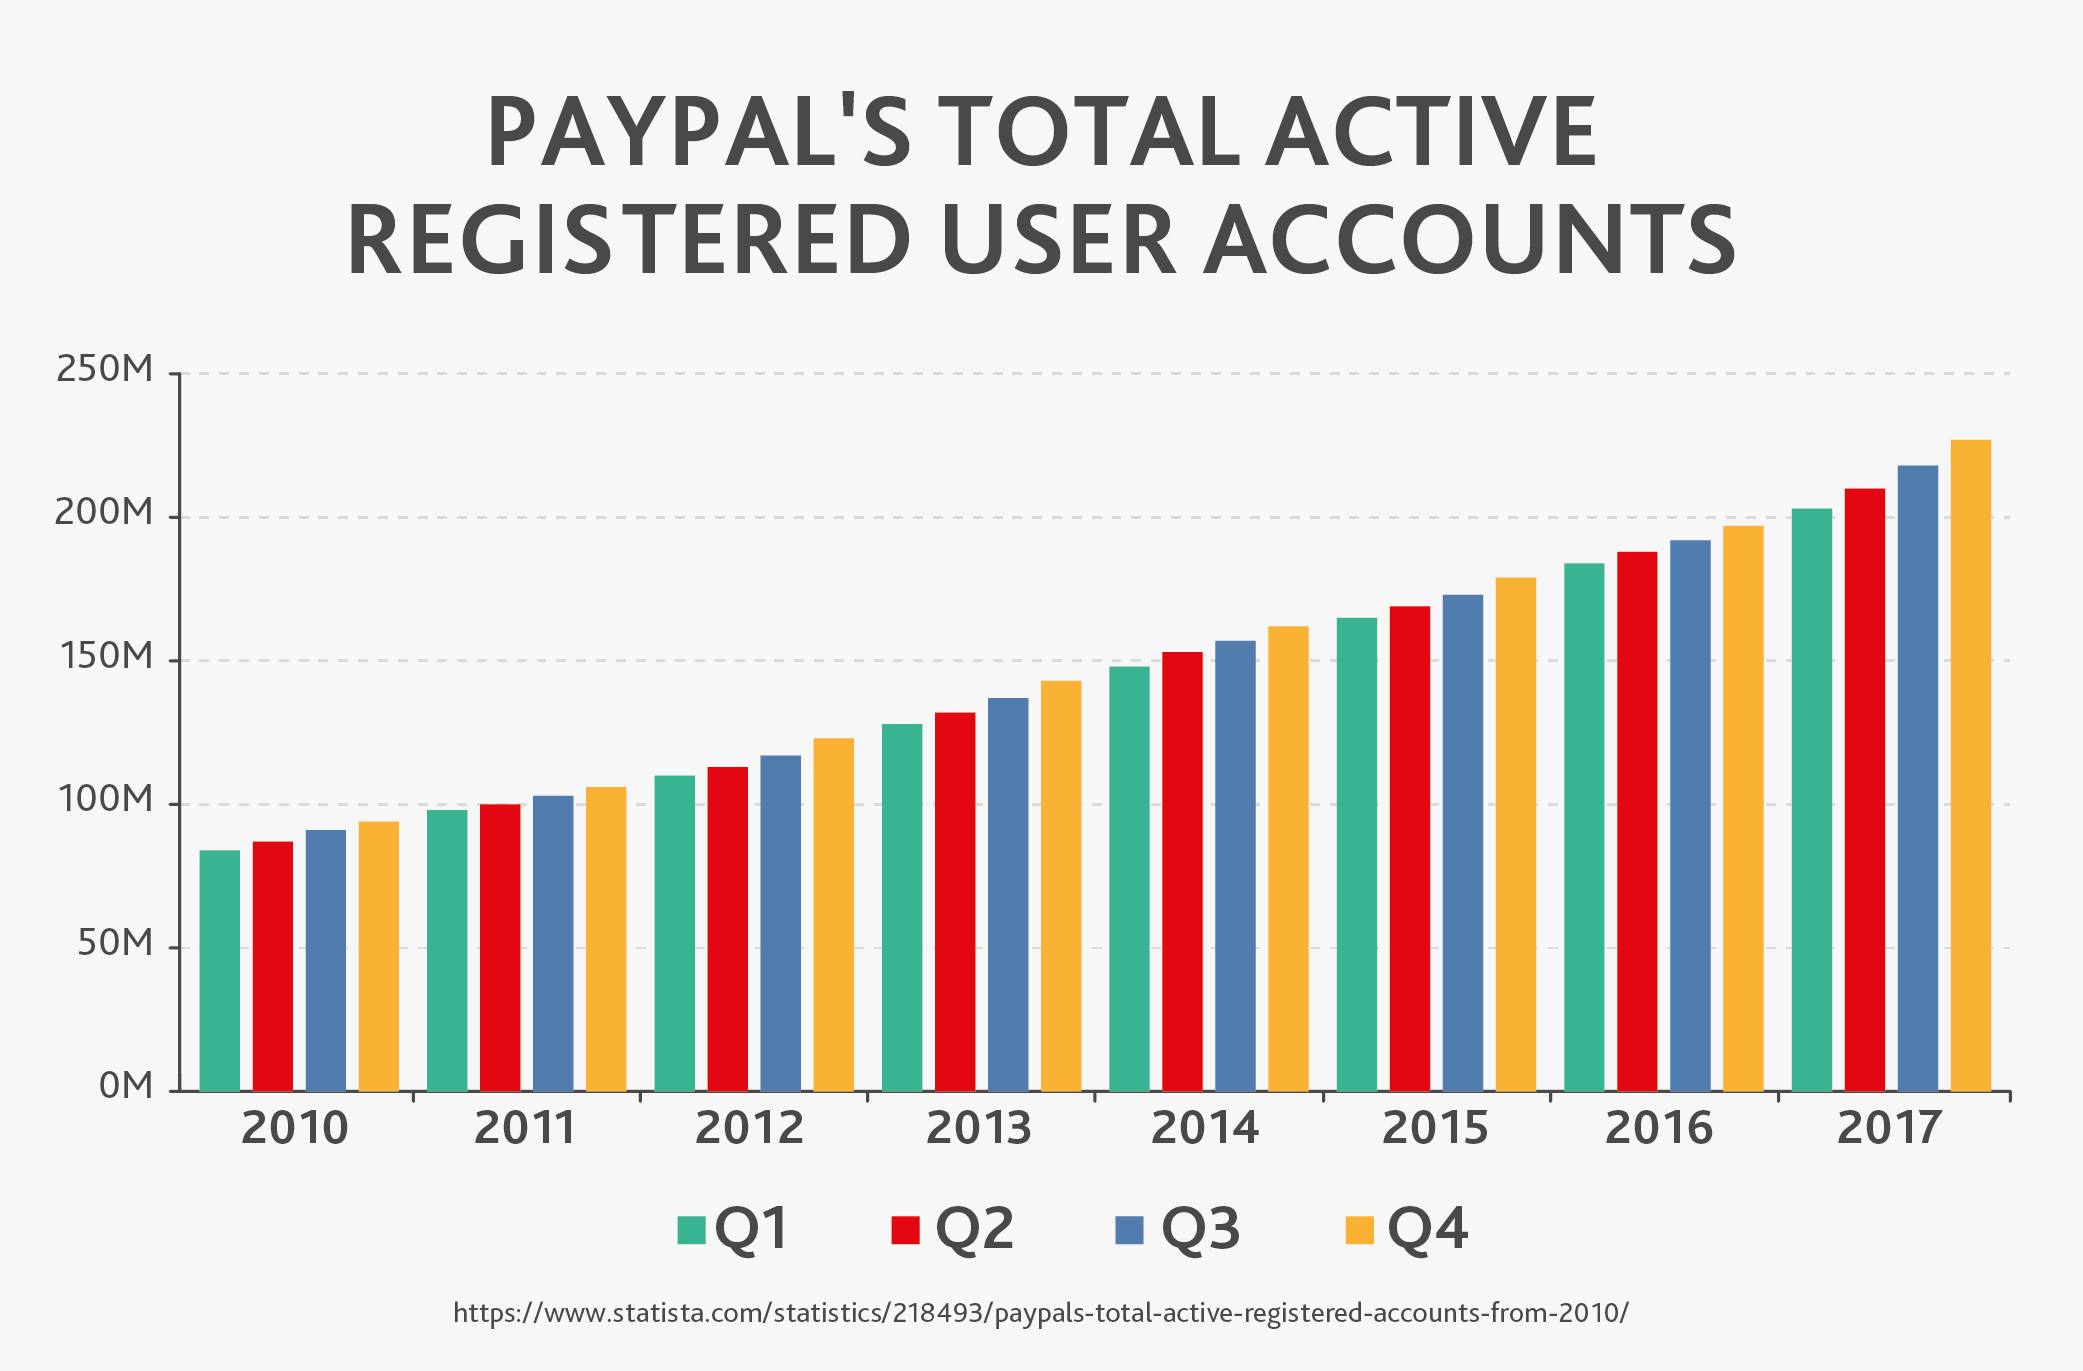 PayPal's Total Active Registered User Accounts